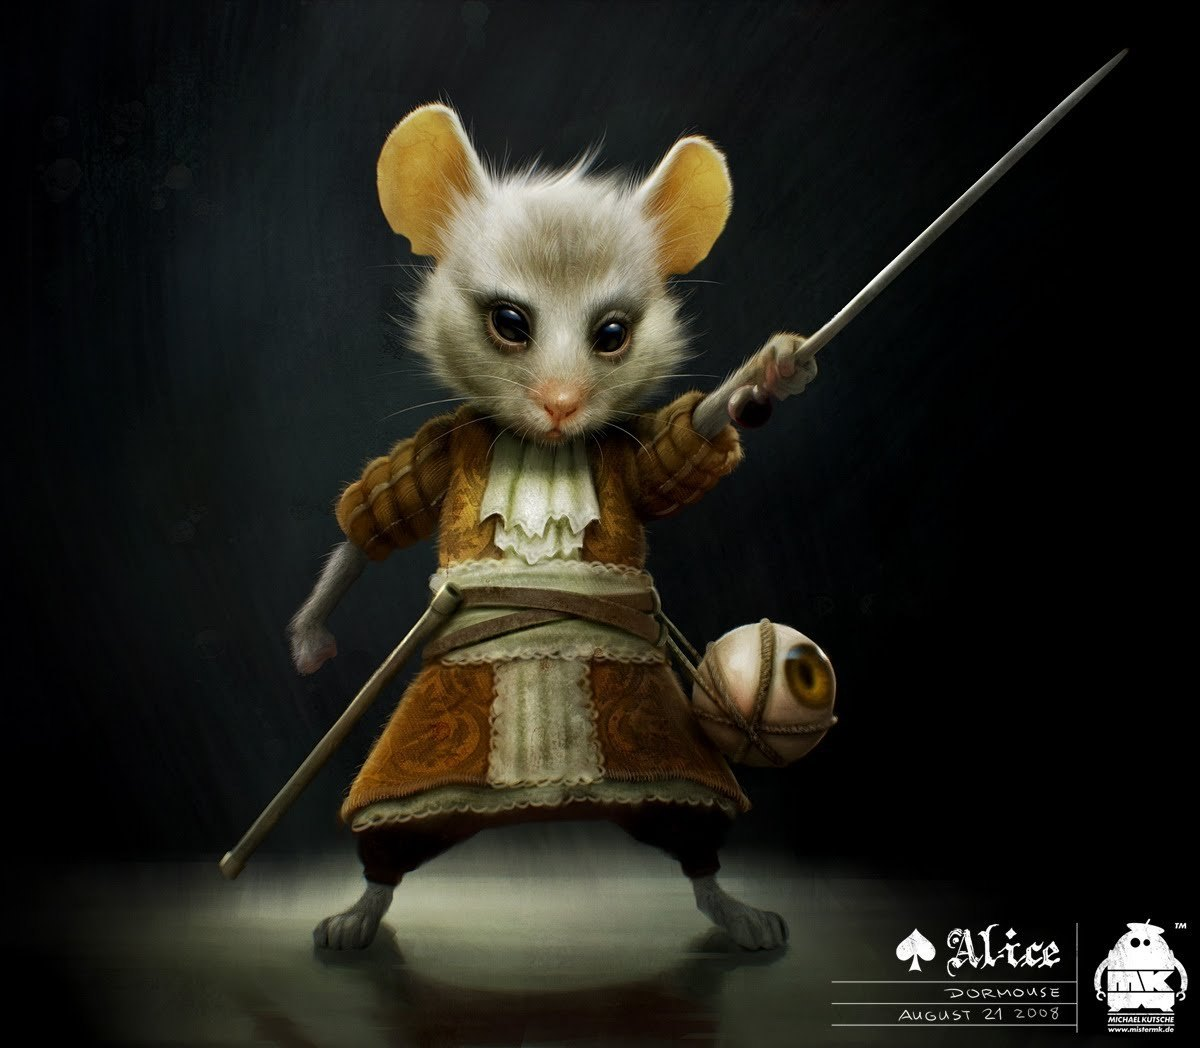 The Dormouse ~ Character Art Von 'Alice In Wonderland' Character Designer Michael Kutsche